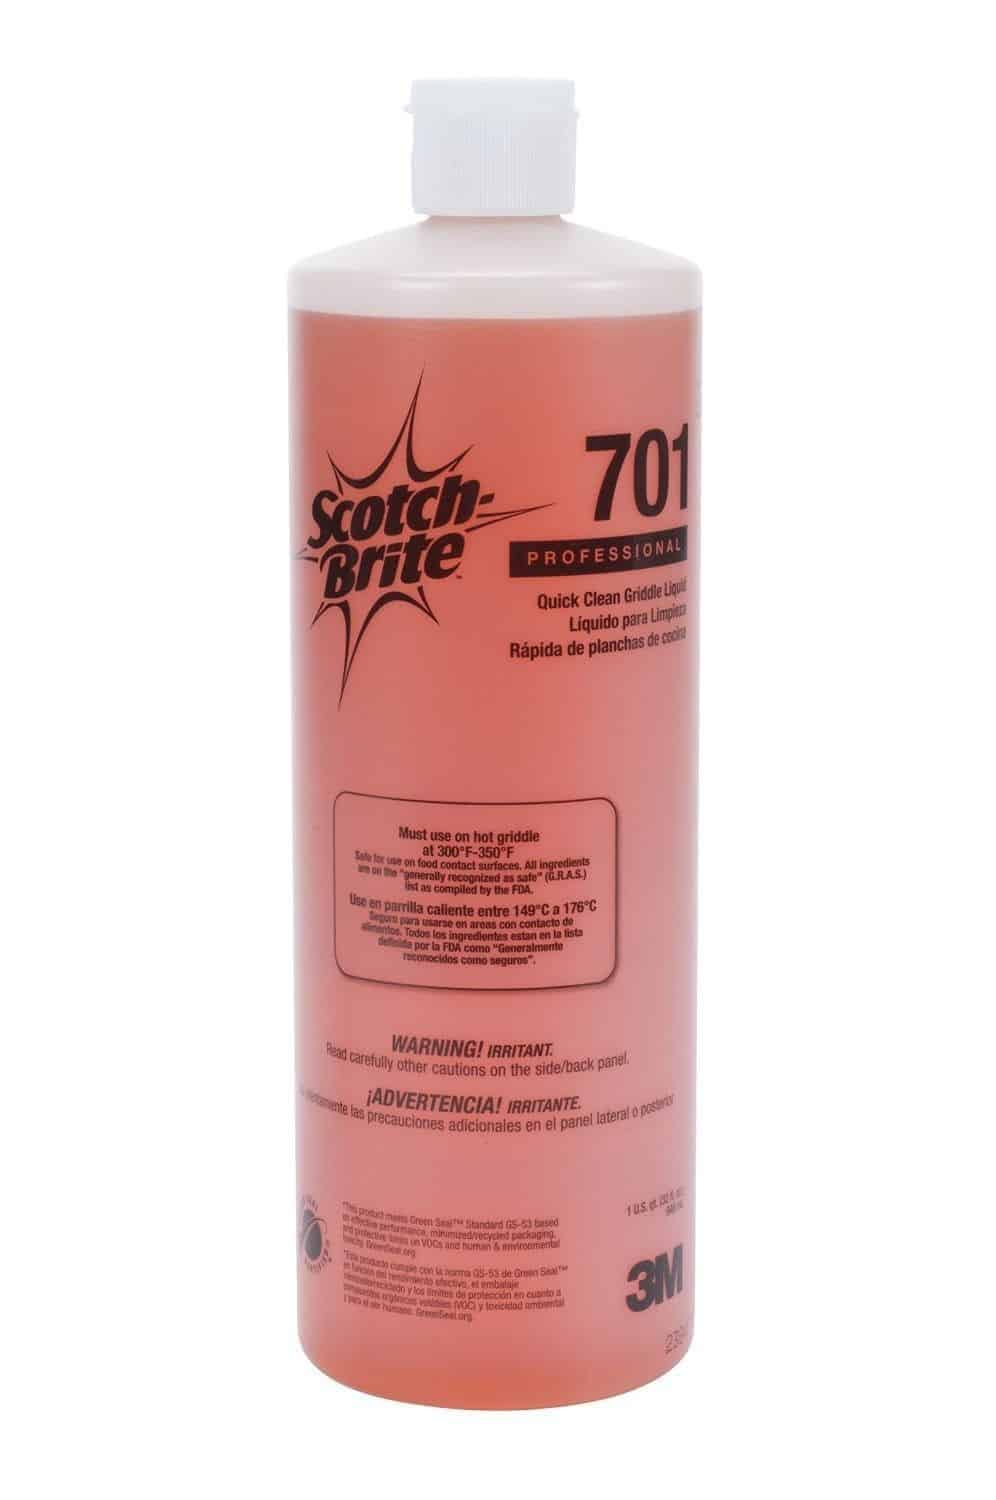 New 3M Scotch-Brite Quick Clean Griddle Liquid 701 Grease Removal 70071127057